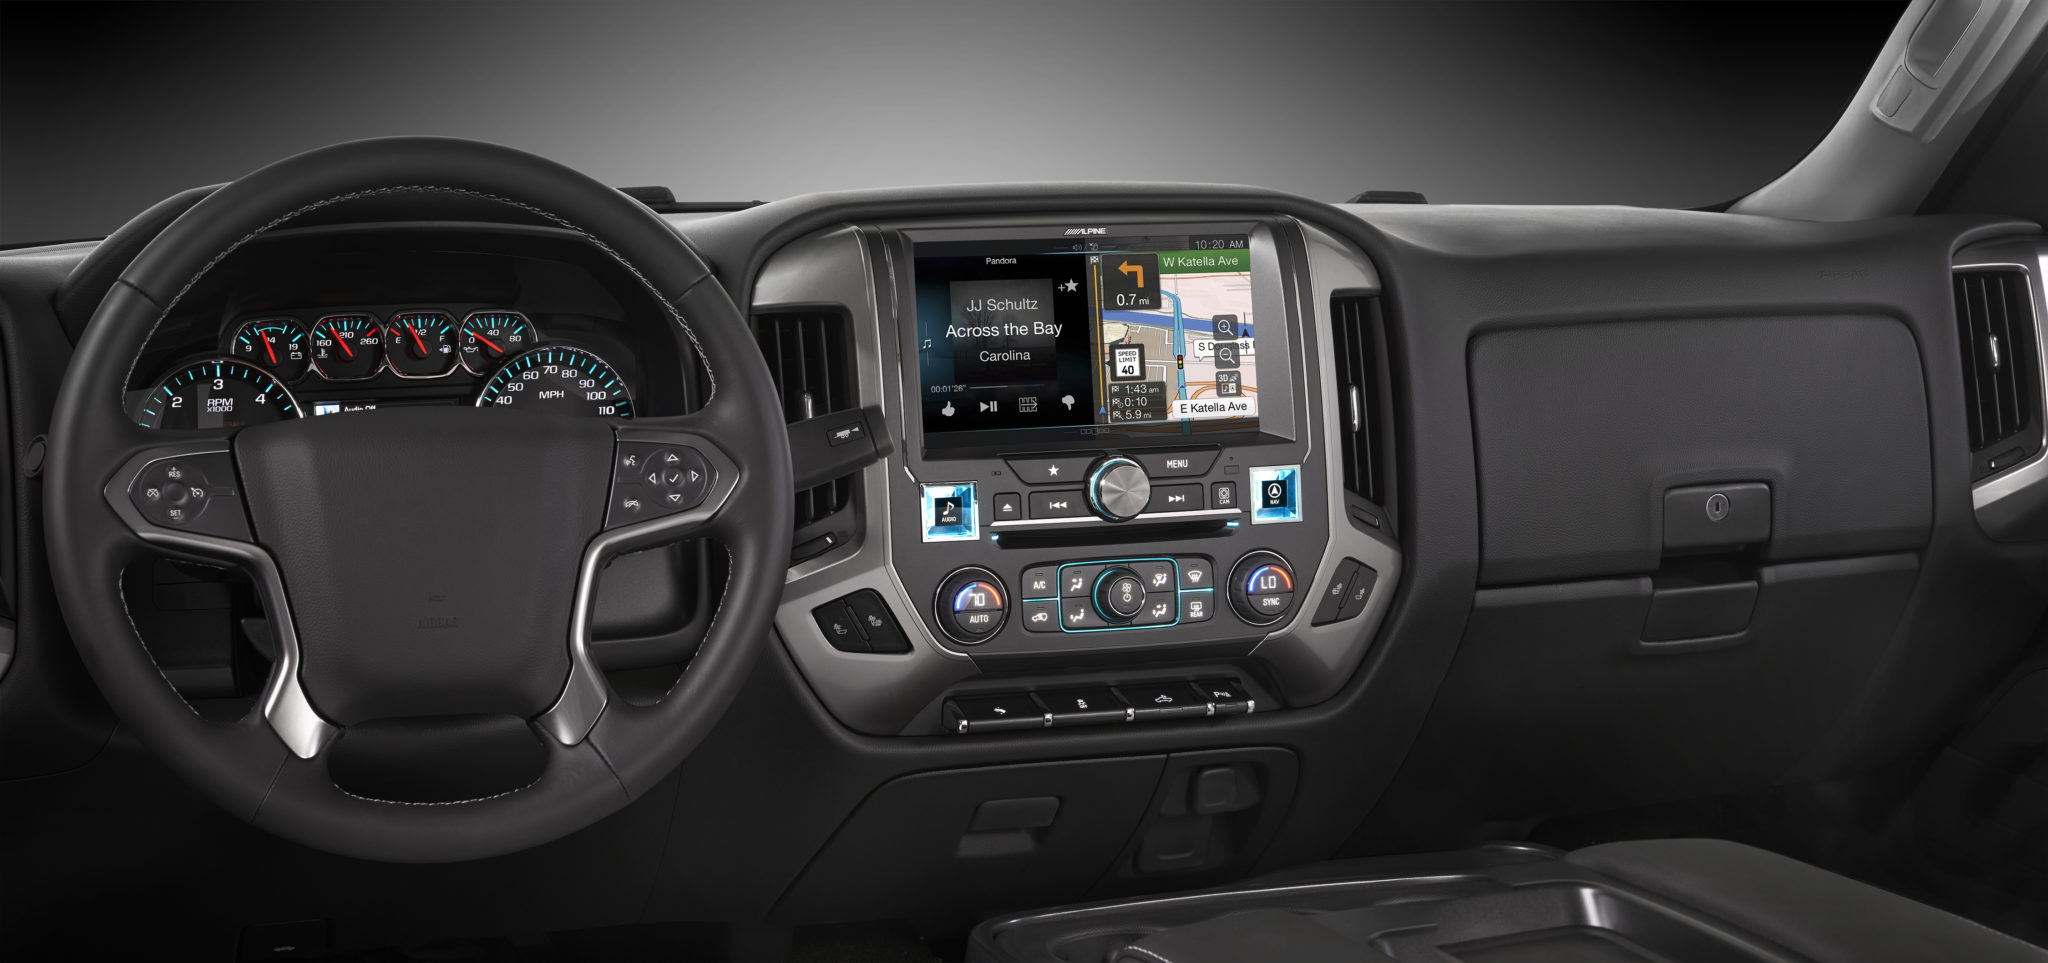 Alpine Restyle In-dash Navigation System for 2014  Chevrolet Silverado